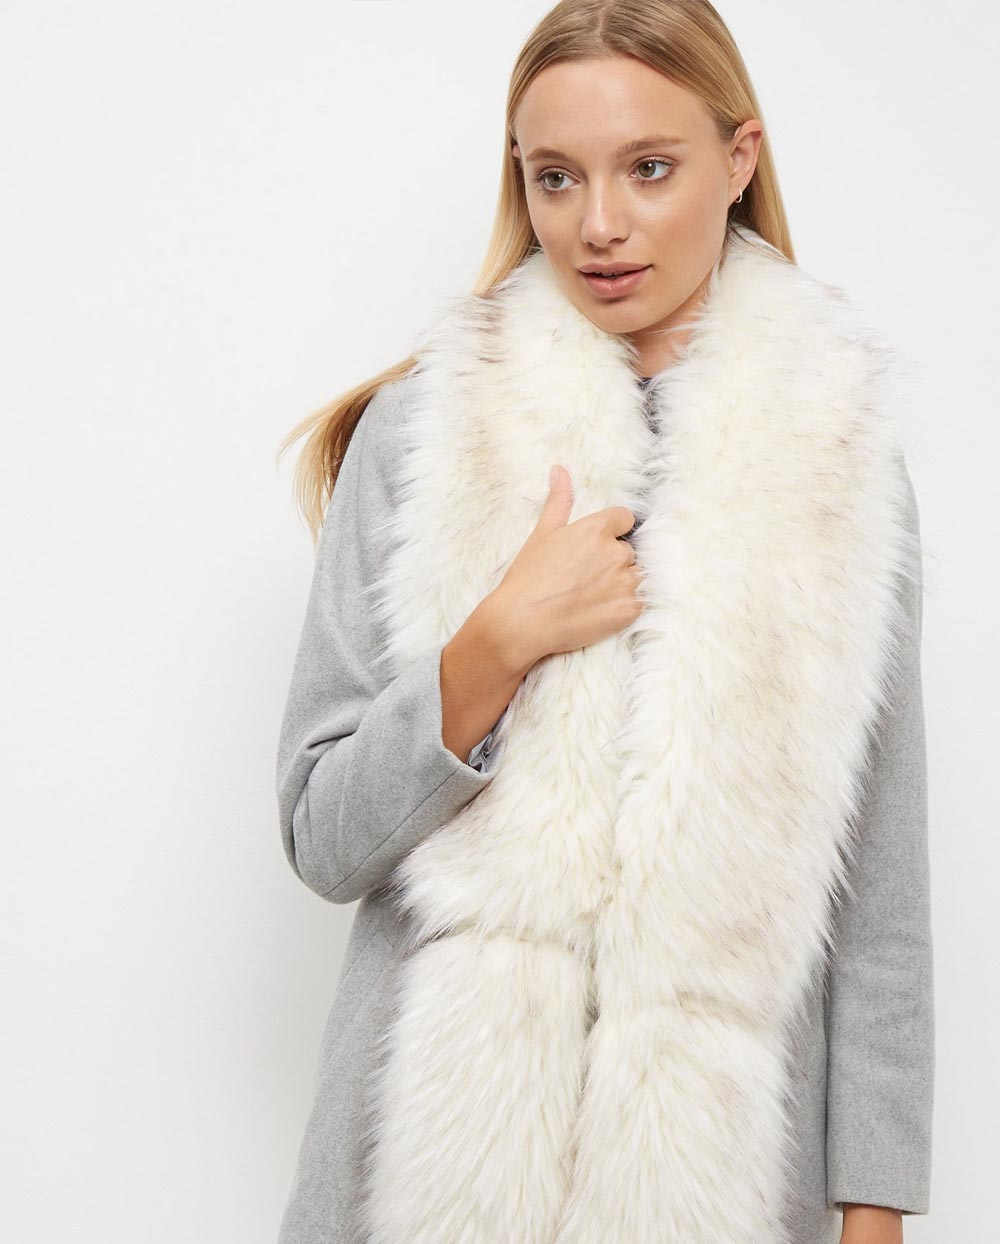 white fur stole paired - 720×817